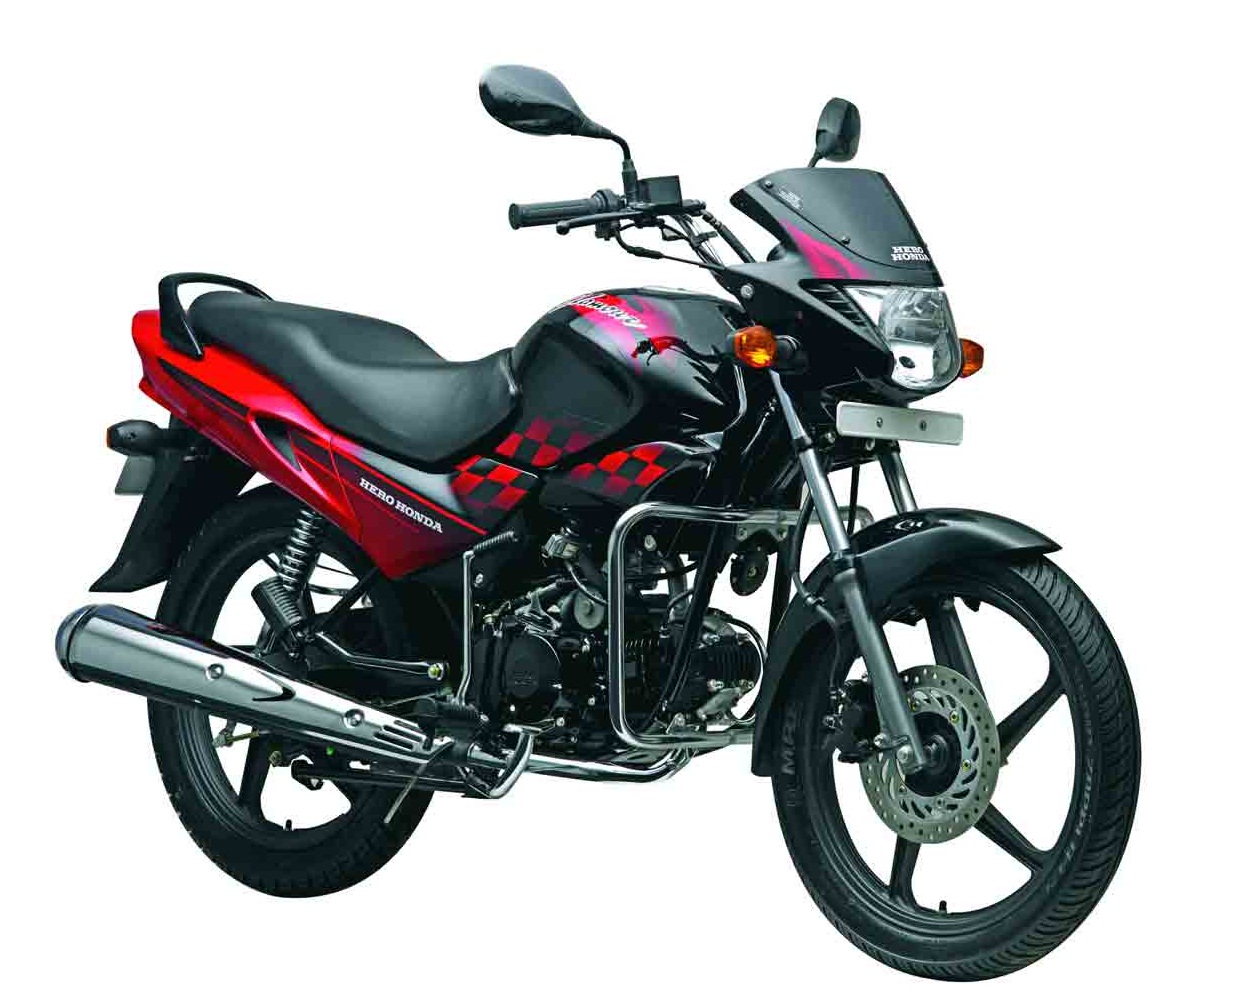 HERO HONDA GLAMOUR Reviews, Price, Specifications, Mileage ... for Honda Motorcycle 125 New Model 2014 Png  113cpg